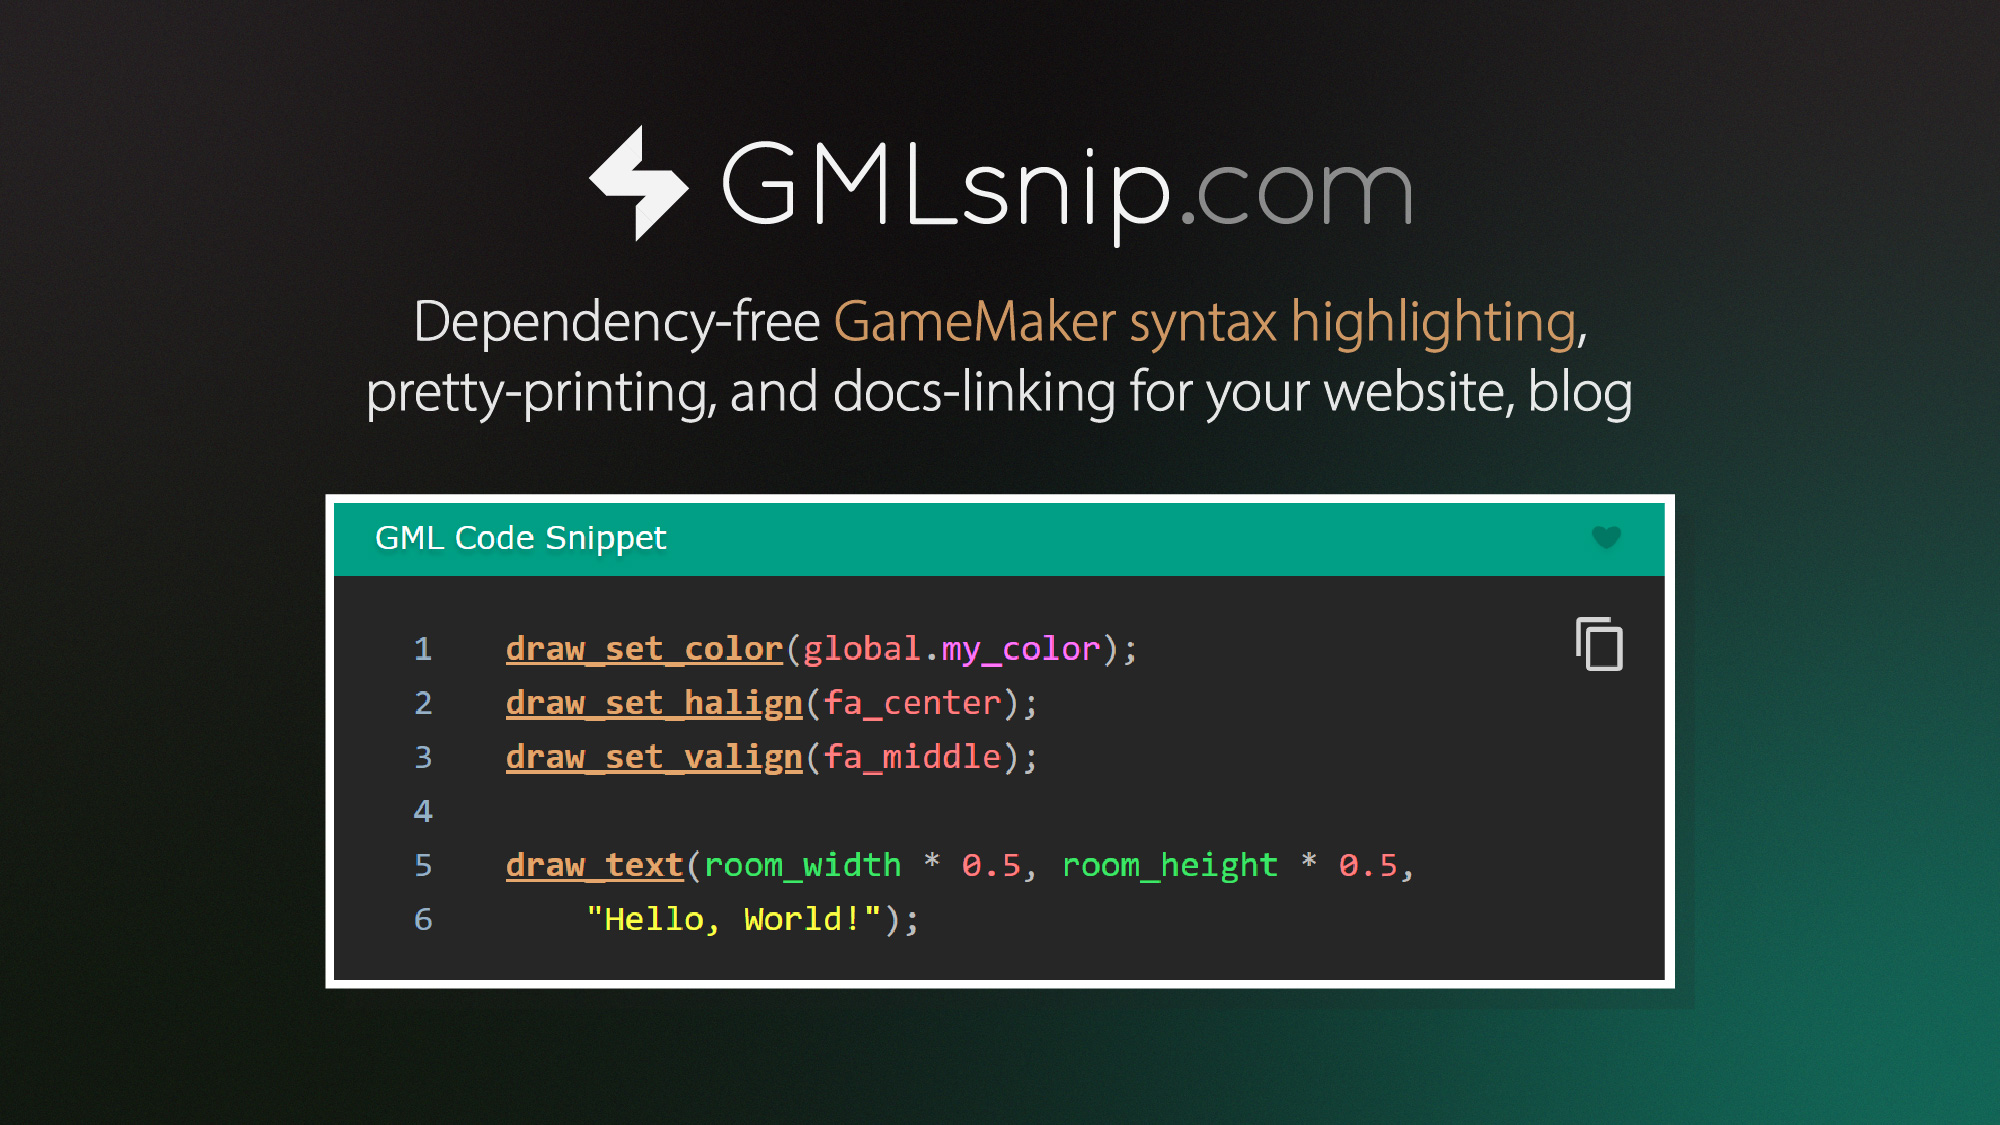 Dependency-free GameMaker syntax highlighting, pretty-printing, and docs-linking for your website, blog.